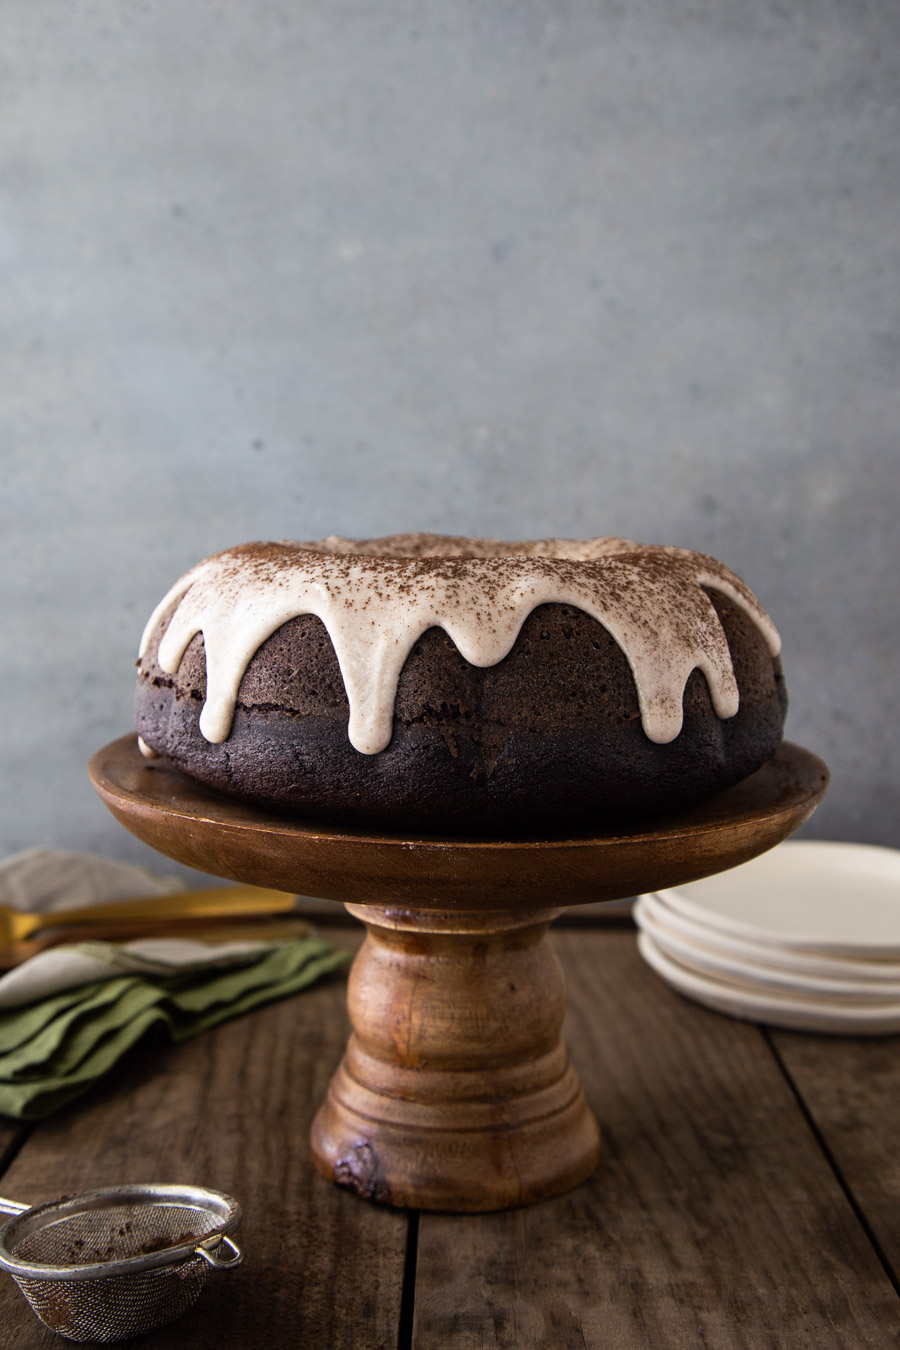 Mexican Chocolate Cake with Cinnamon Glaze